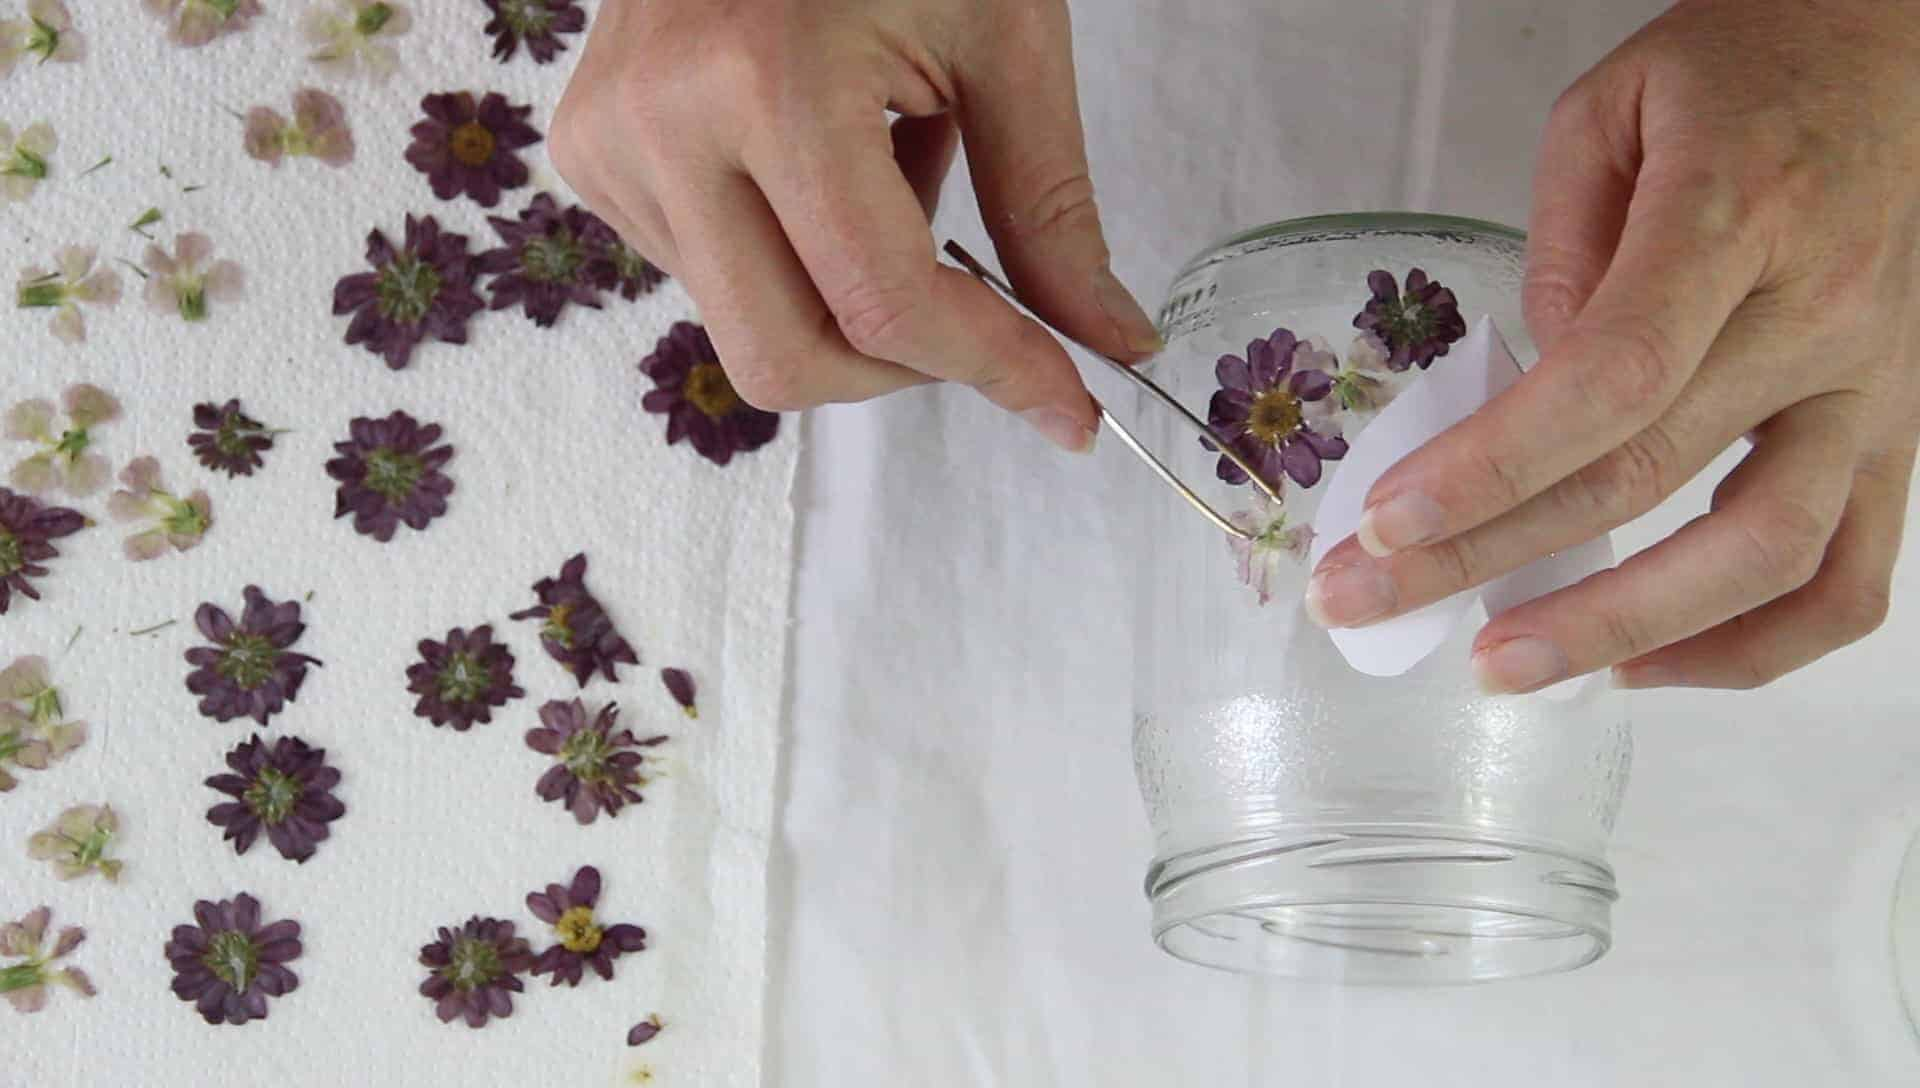 A person's hands showing how to glue pressed flowers onto a glass jar to make glass jar lanterns.